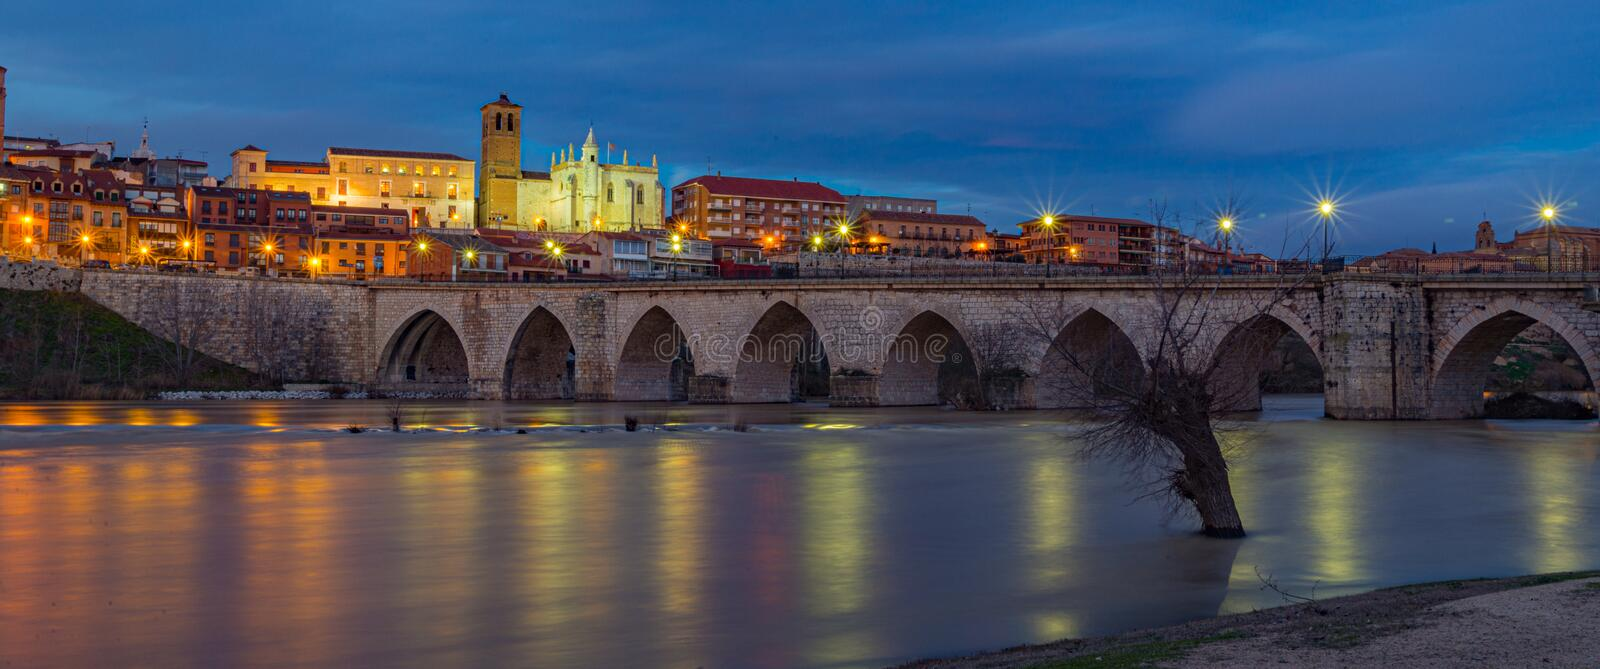 sunset in the city of Tordesillas Spain royalty free stock photos